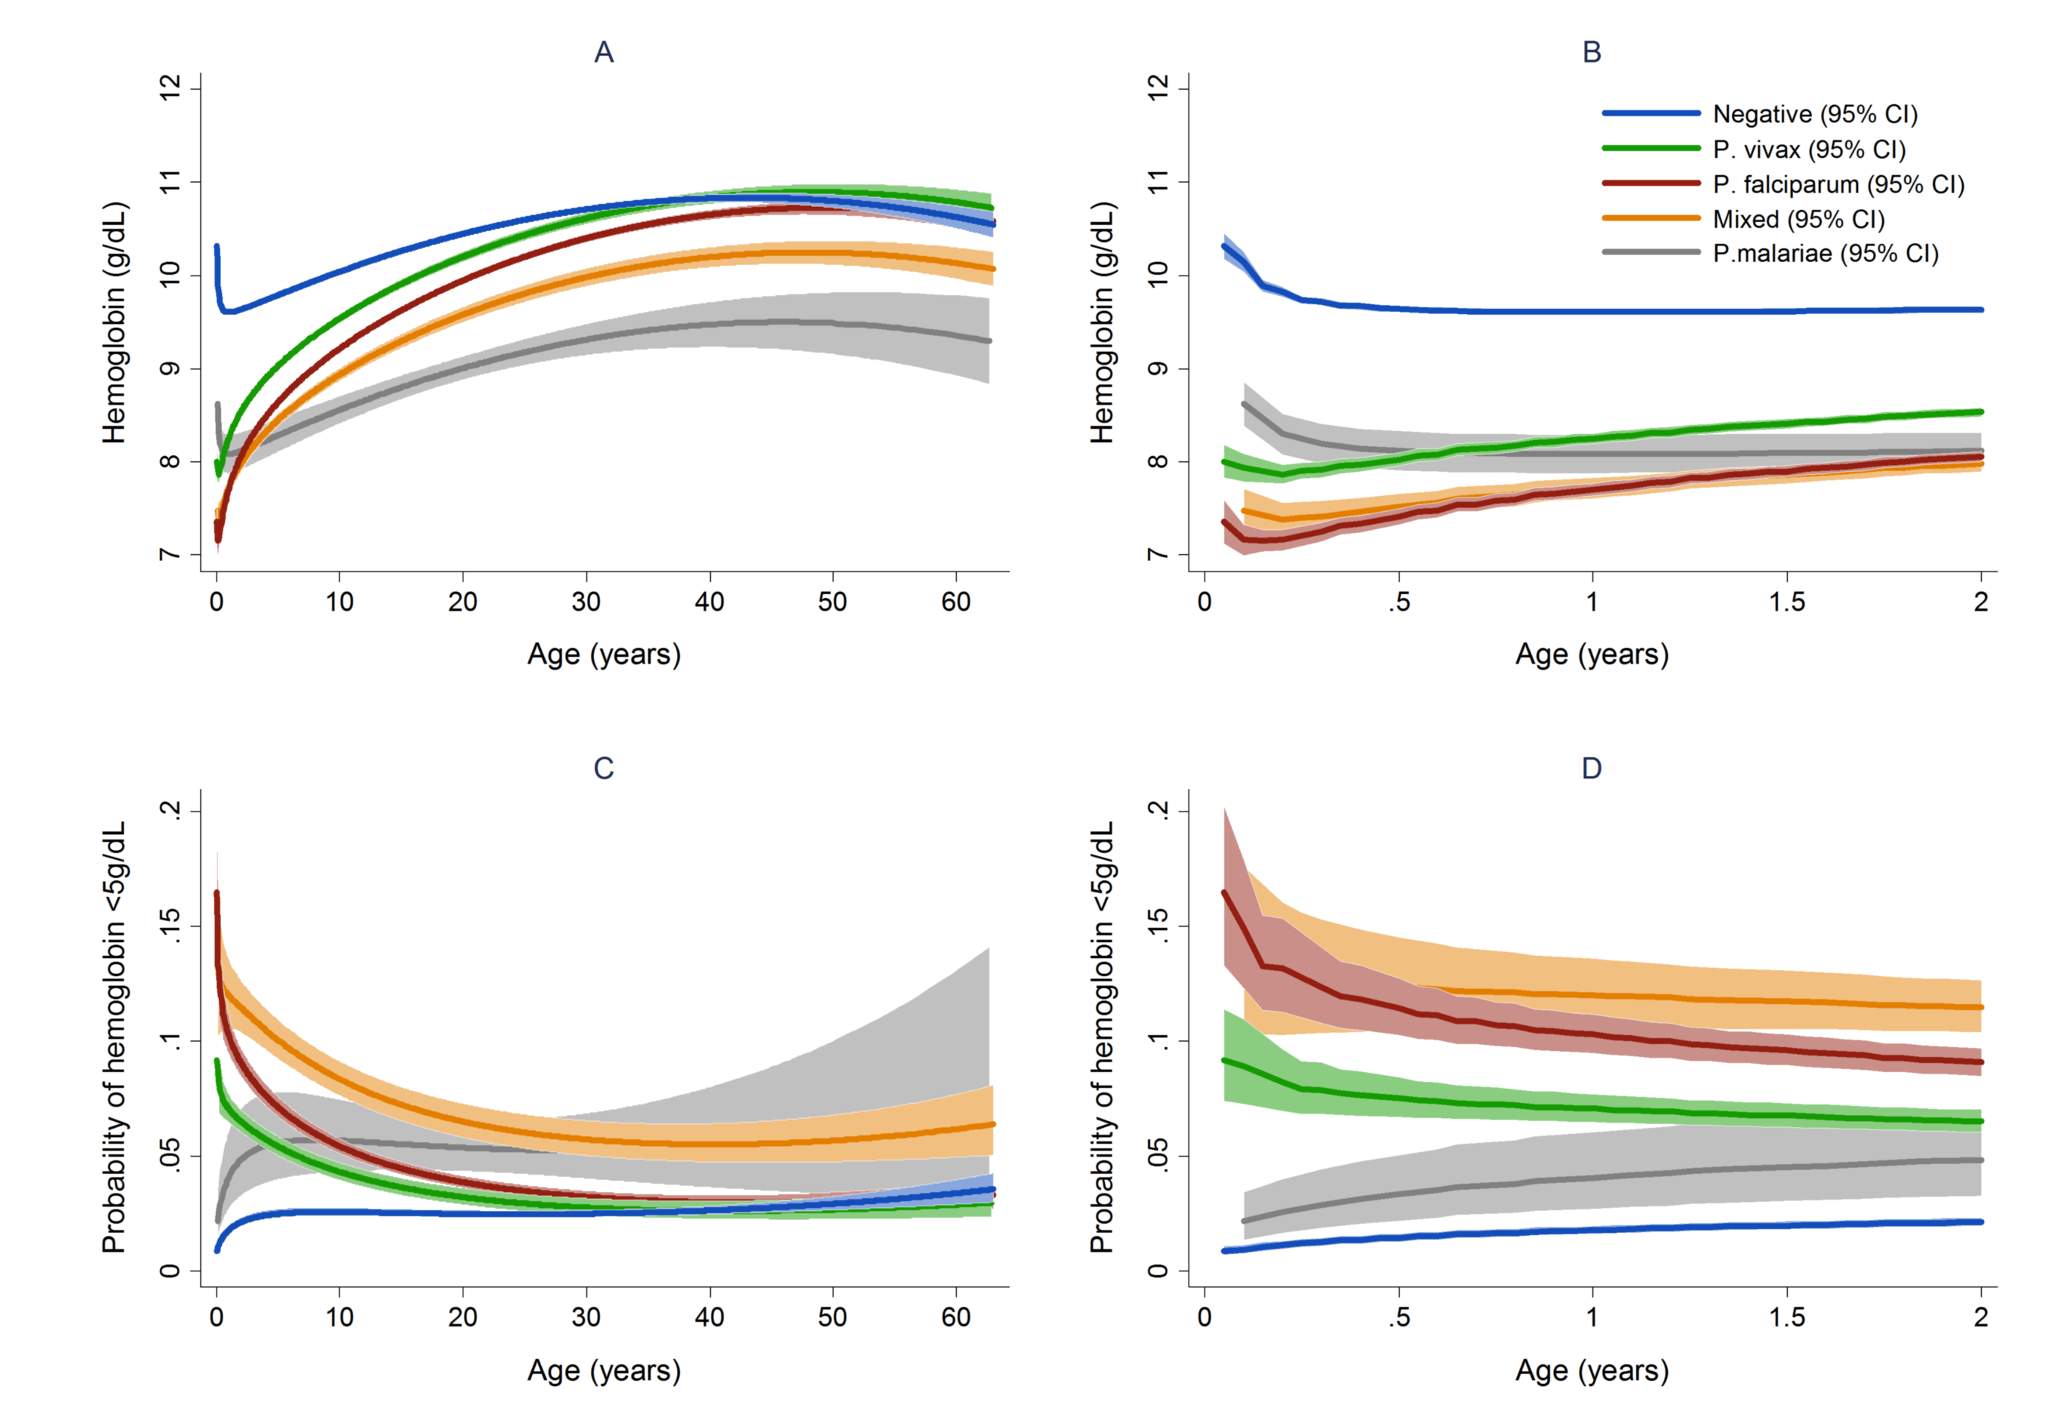 Estimated mean hemoglobin in hospital attendees by <i>Plasmodium</i> species from infancy to adulthood (A) and during the first 2 years of life (B) and the estimated probability of severe anemia (hemoglobin &lt;5 g/dl) by <i>Plasmodium</i> species from infancy to adulthood (C) and during the first 2 years of life (D).